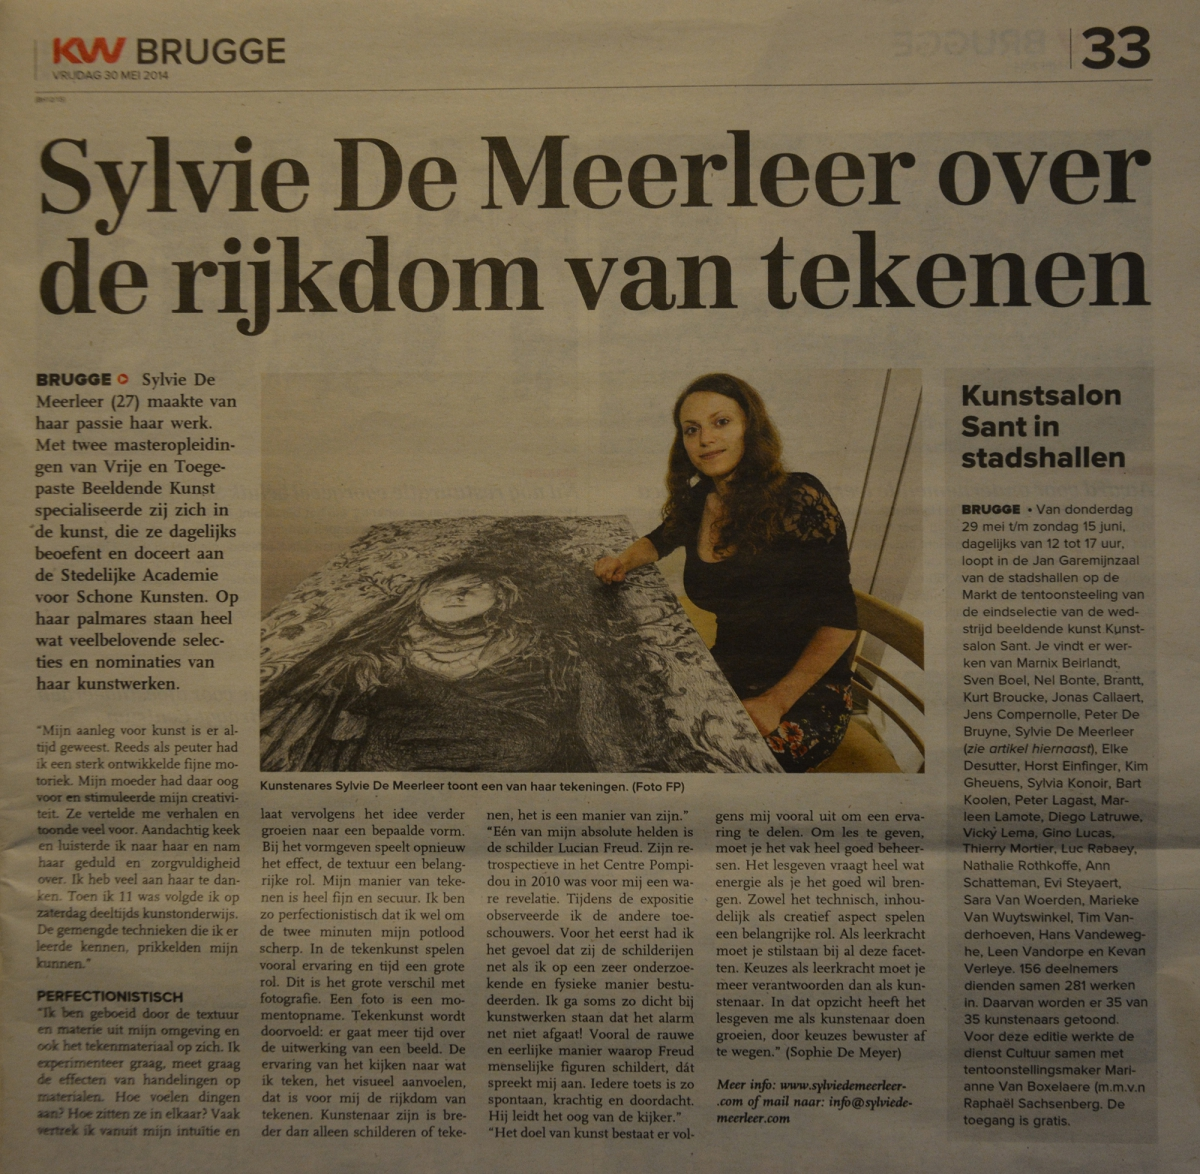 Interview with Sylvie De Meerleer on drawing, published in the 'Brugsch Handelsblad' (BE).